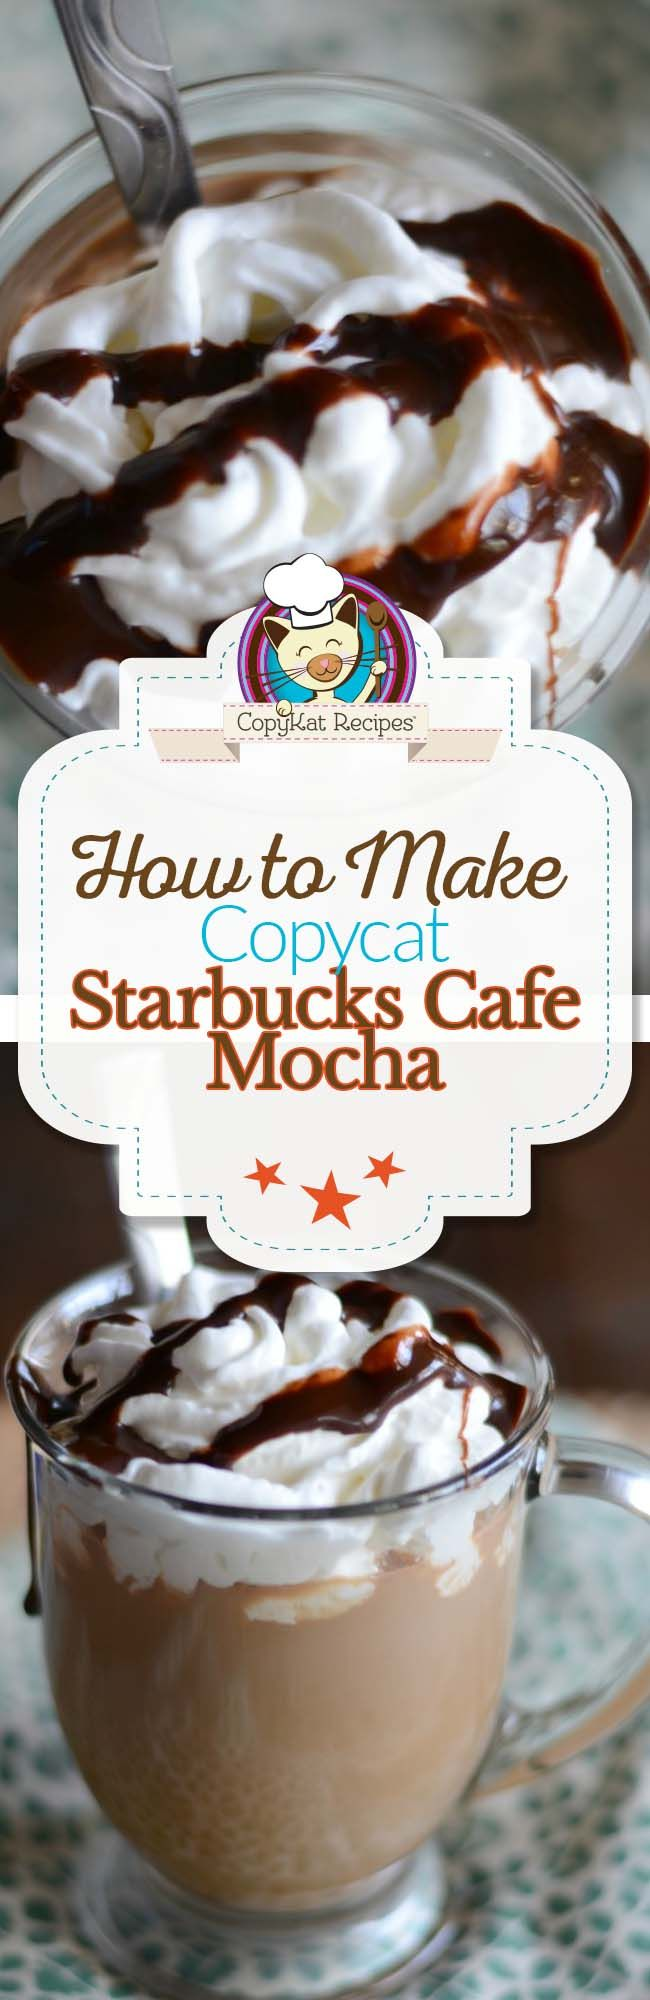 Make your own delicious Starbucks Cafe Mocha at home with this easy copycat recipe. (Chocolate Milkshake Starbucks)